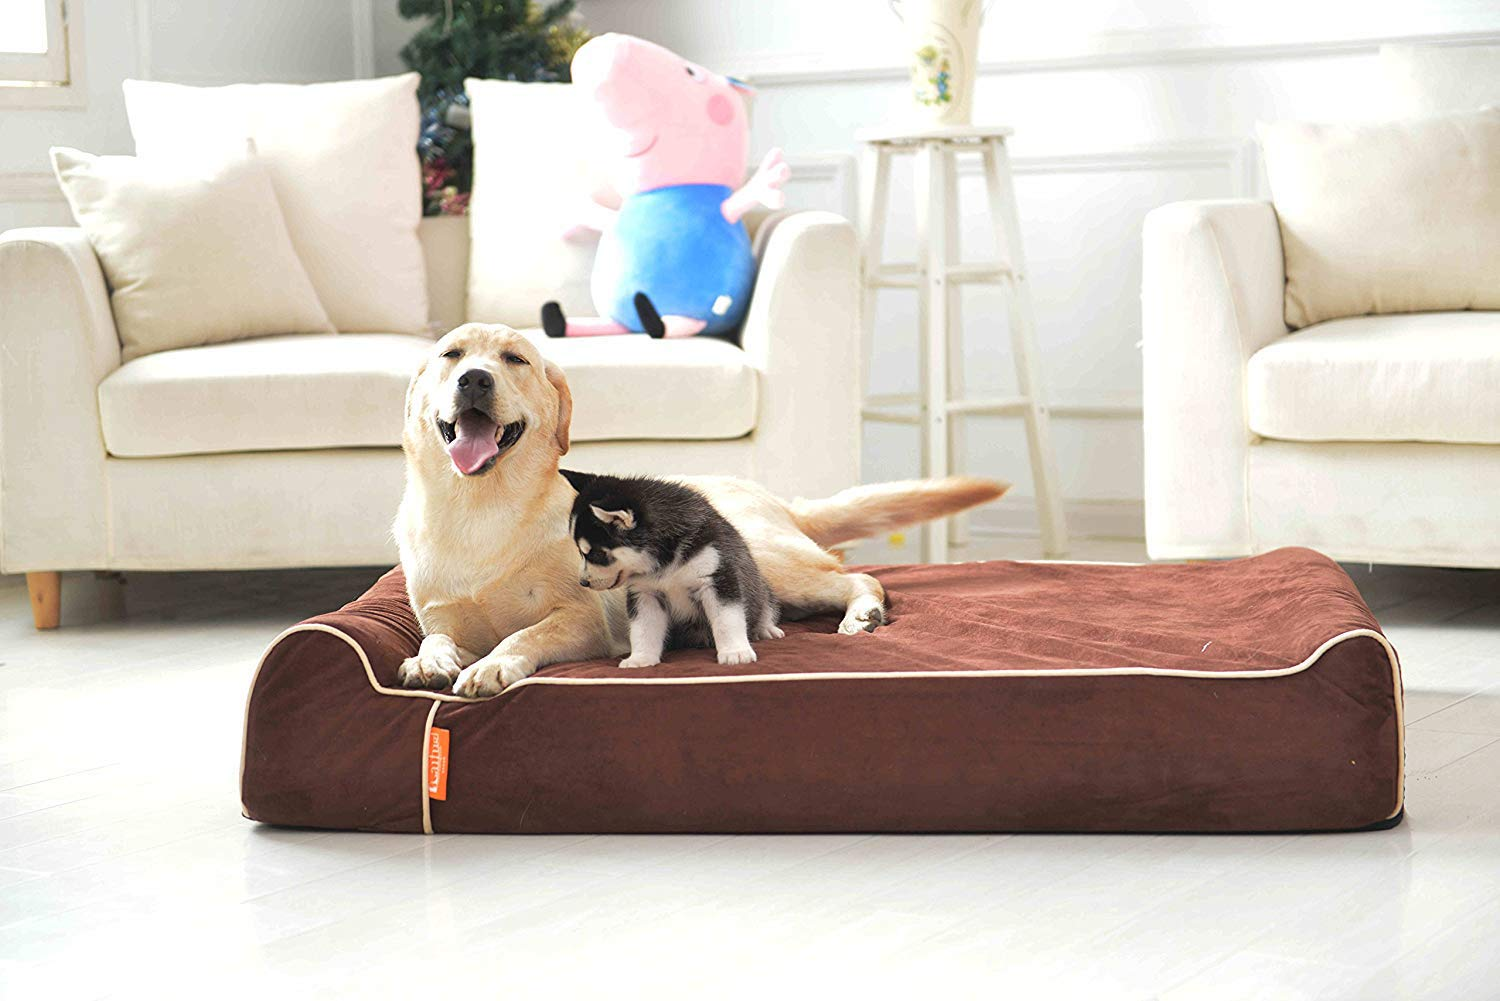 Laifug Thick High Grade Orthopedic Memory Foam Dog Bed with Pillow and Easy to Wash Removable Cover with Durable Waterproof Liner